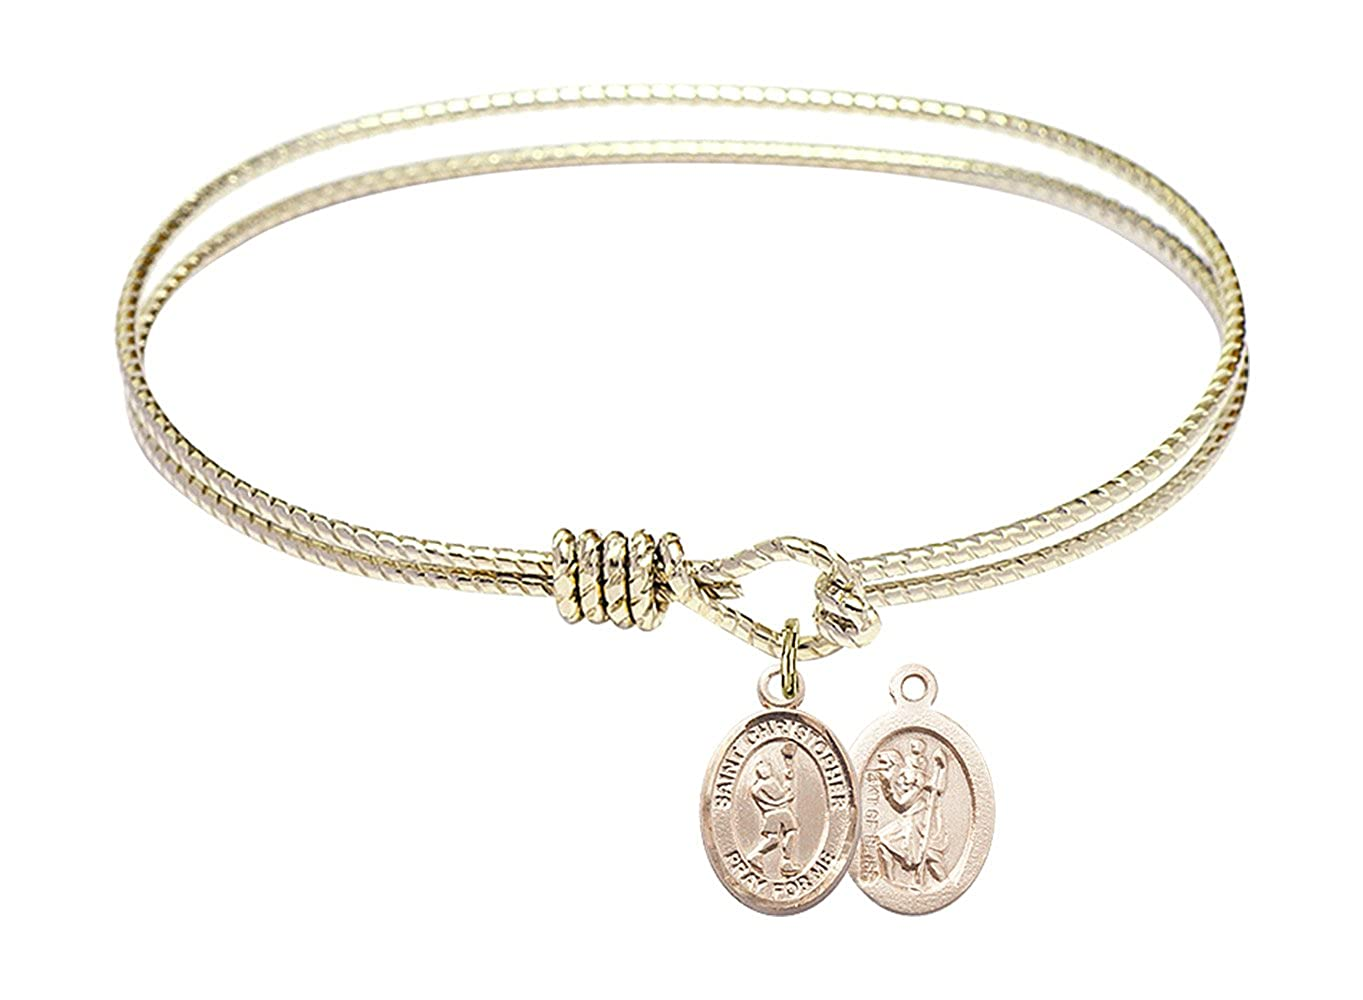 St Christopher Lacrosse Charm On A 7 1//4 Inch Oval Eye Hook Bangle Bracelet